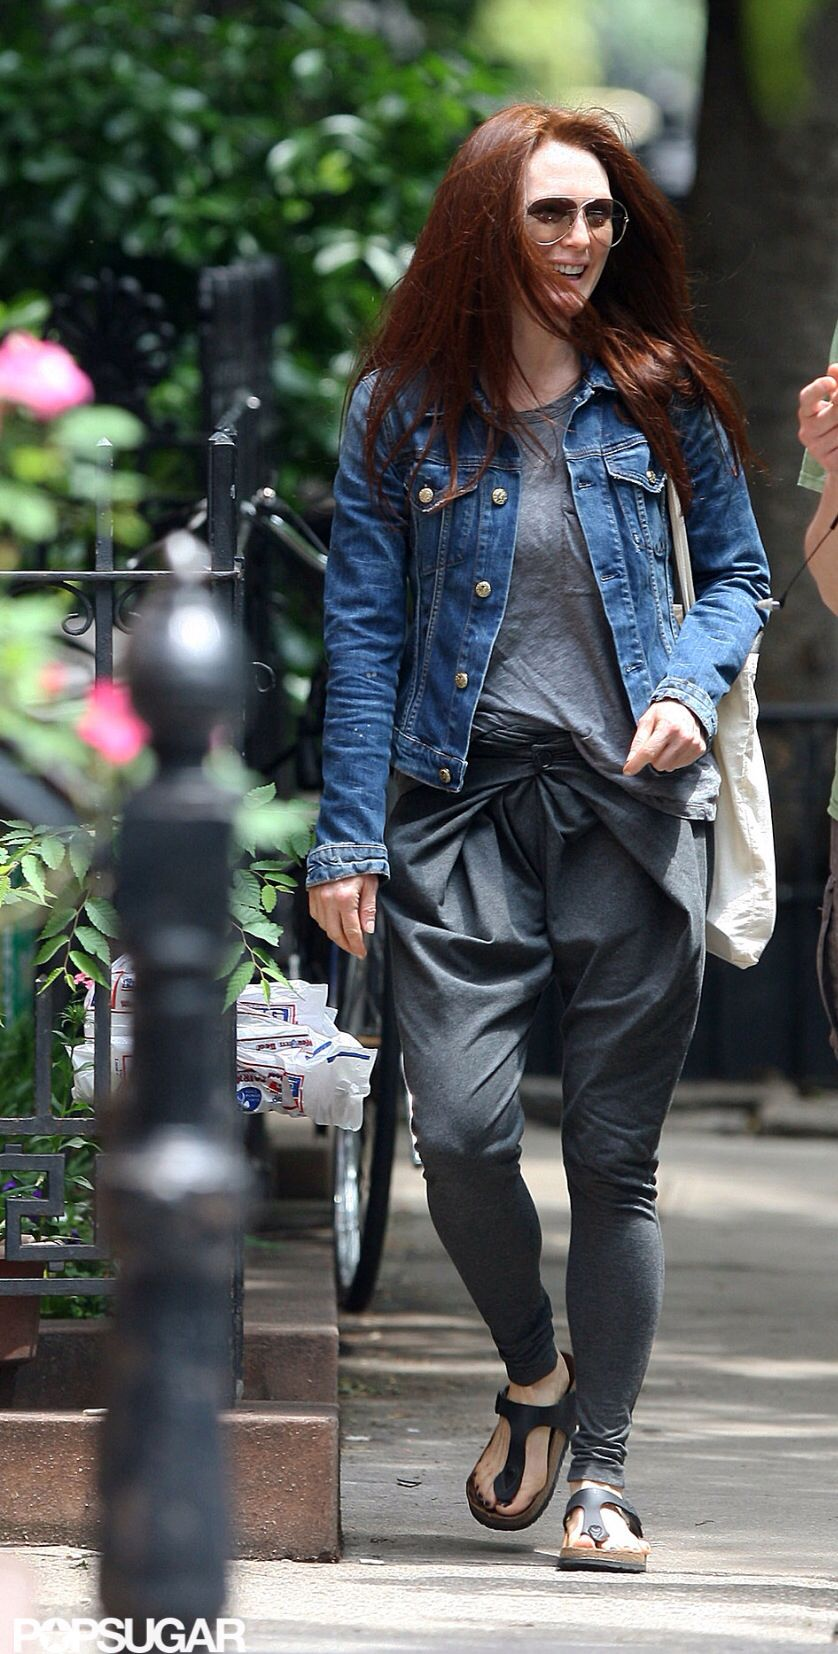 Julianne Moore Mum Fashion Travel Outfit Street Style